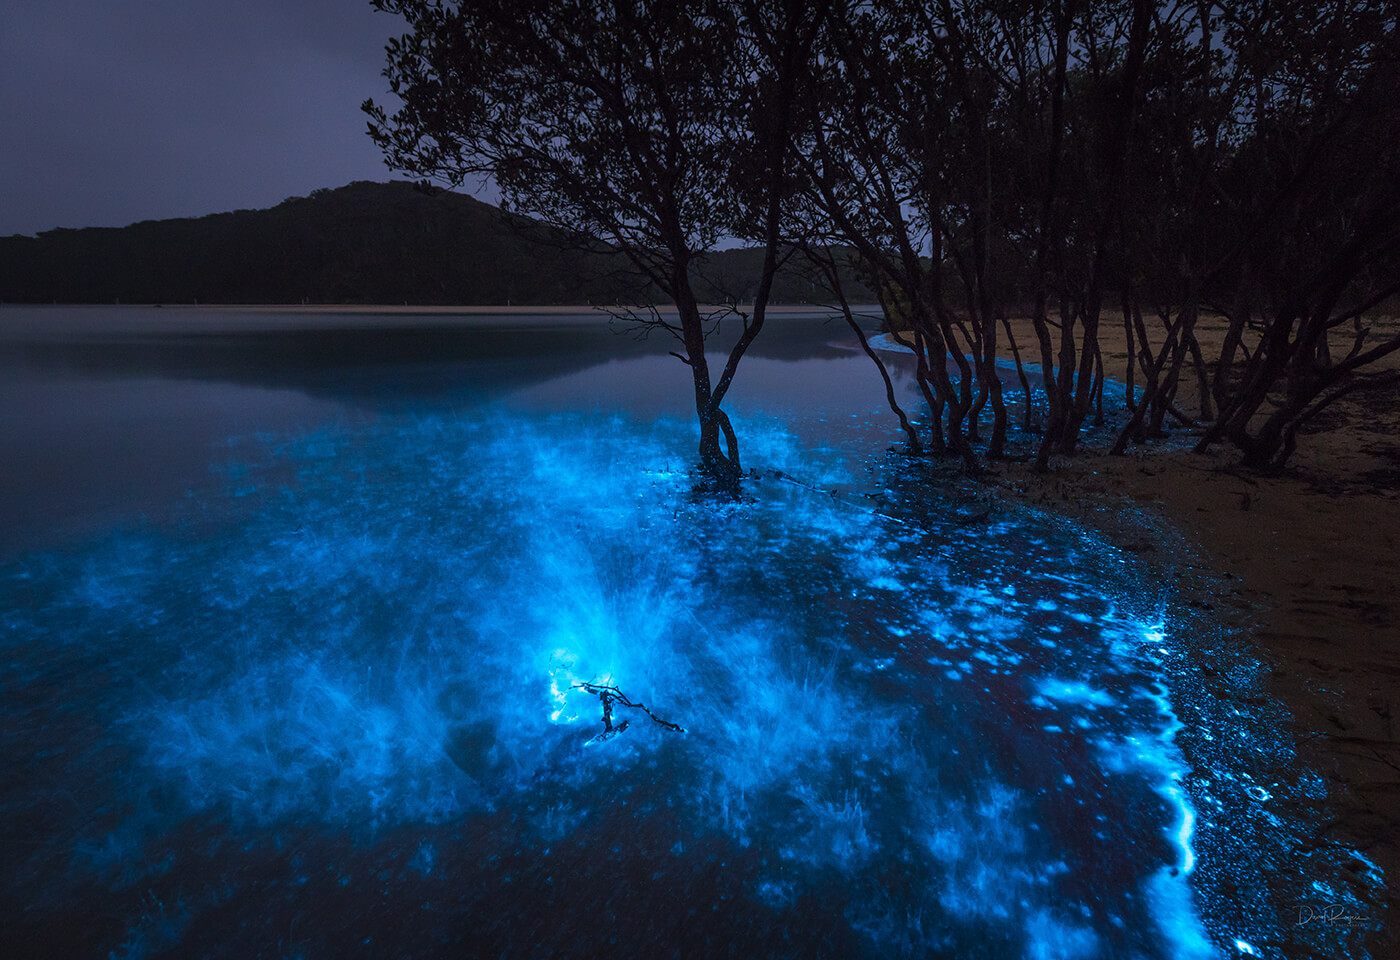 Bioluminescence Photography by David Rogers @davey_rogers